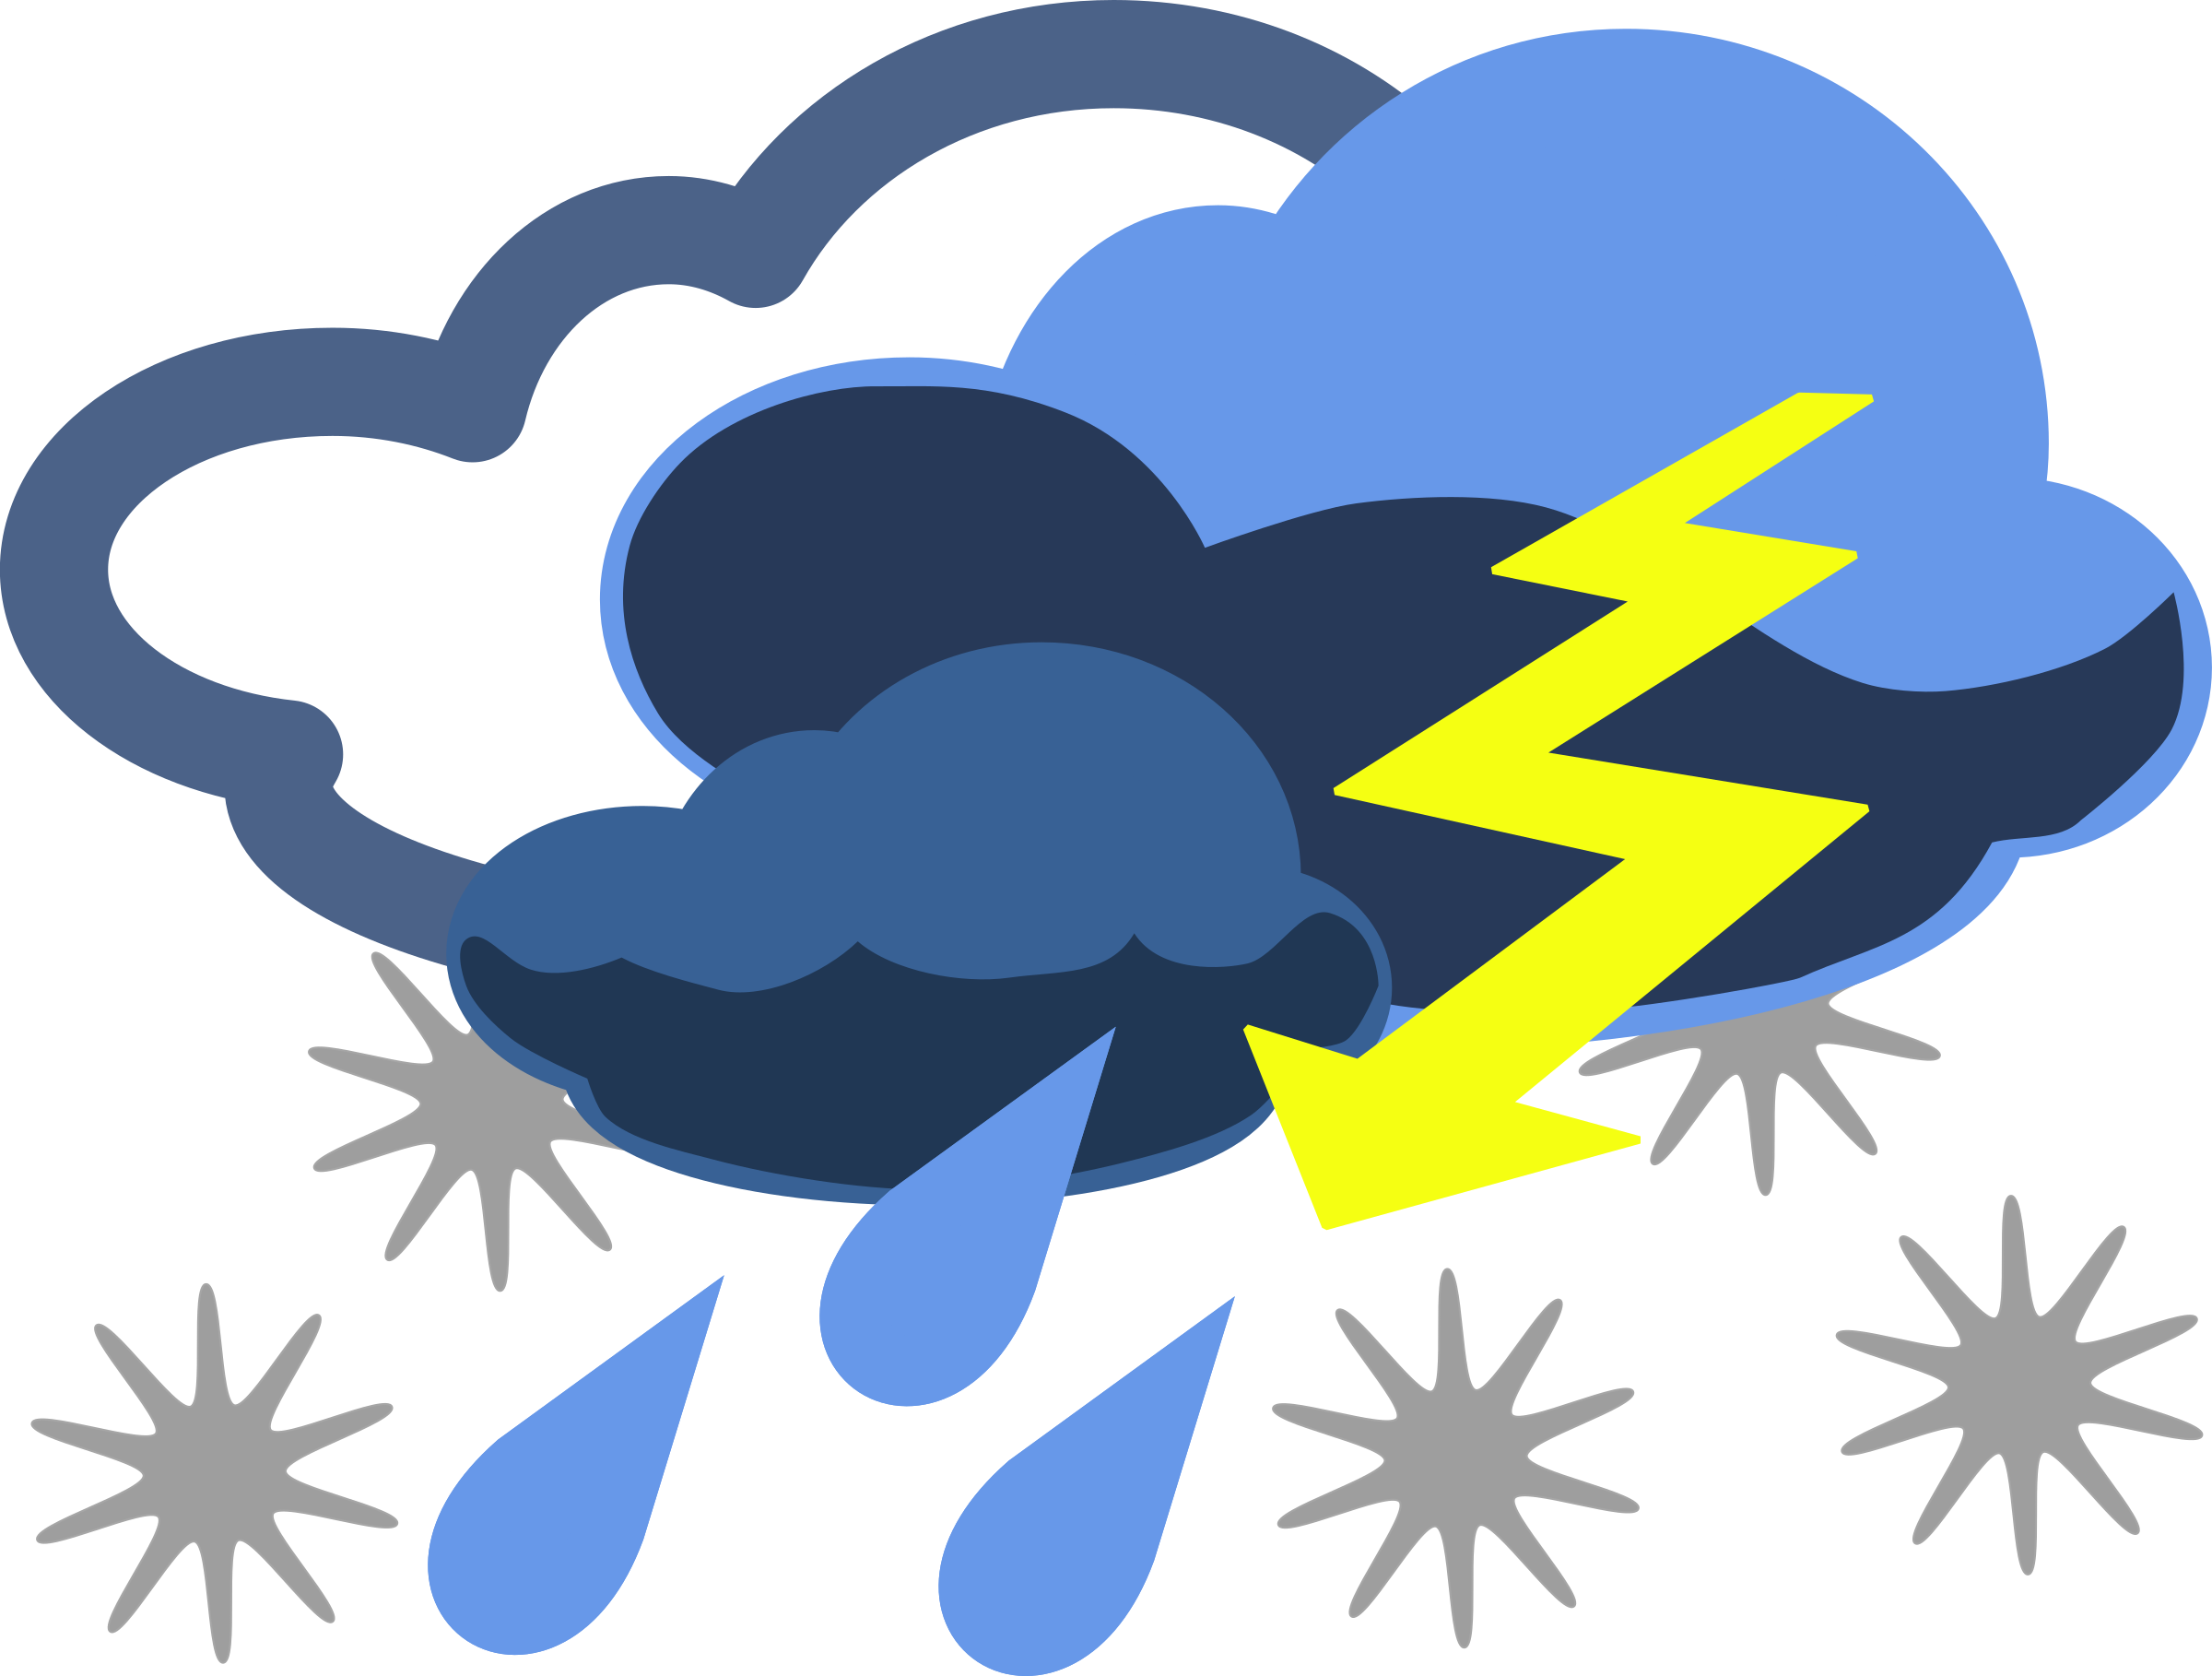 Windy clipart severe.  collection of weather